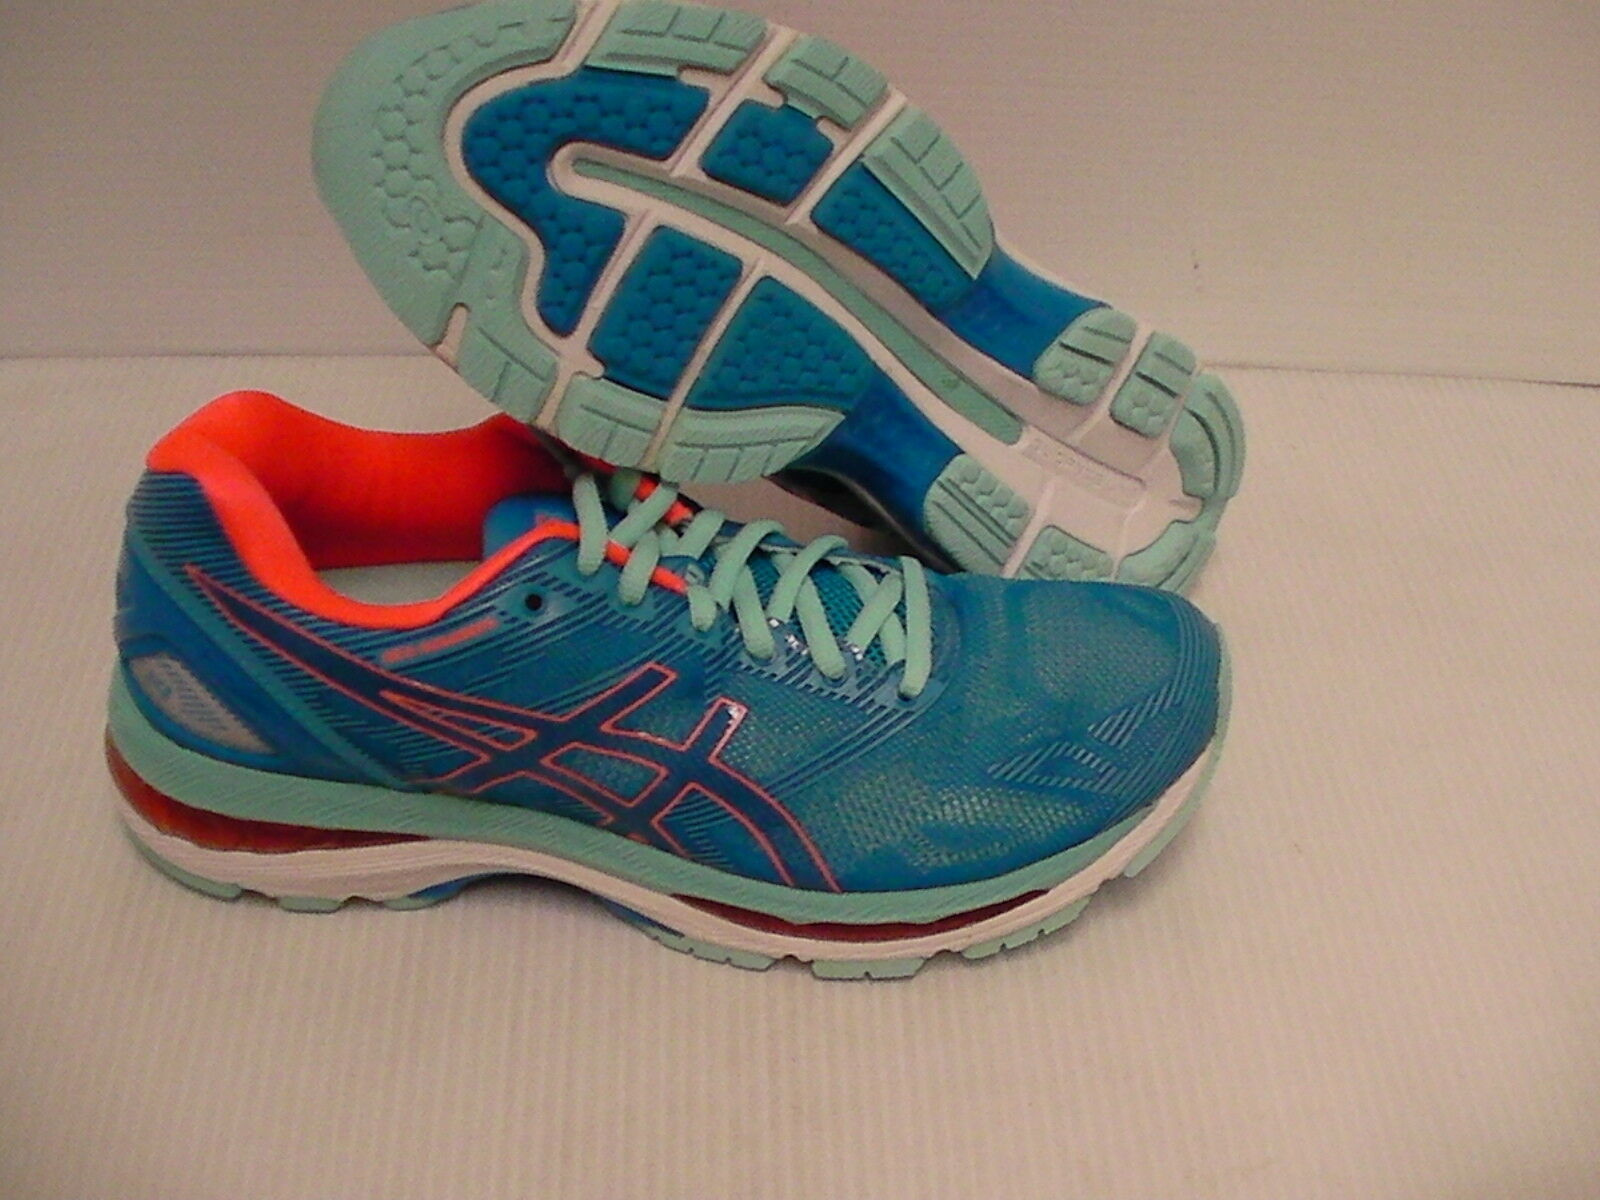 Asics women's gel nimbus 19 running shoes diva bluee flash coral size 9 us